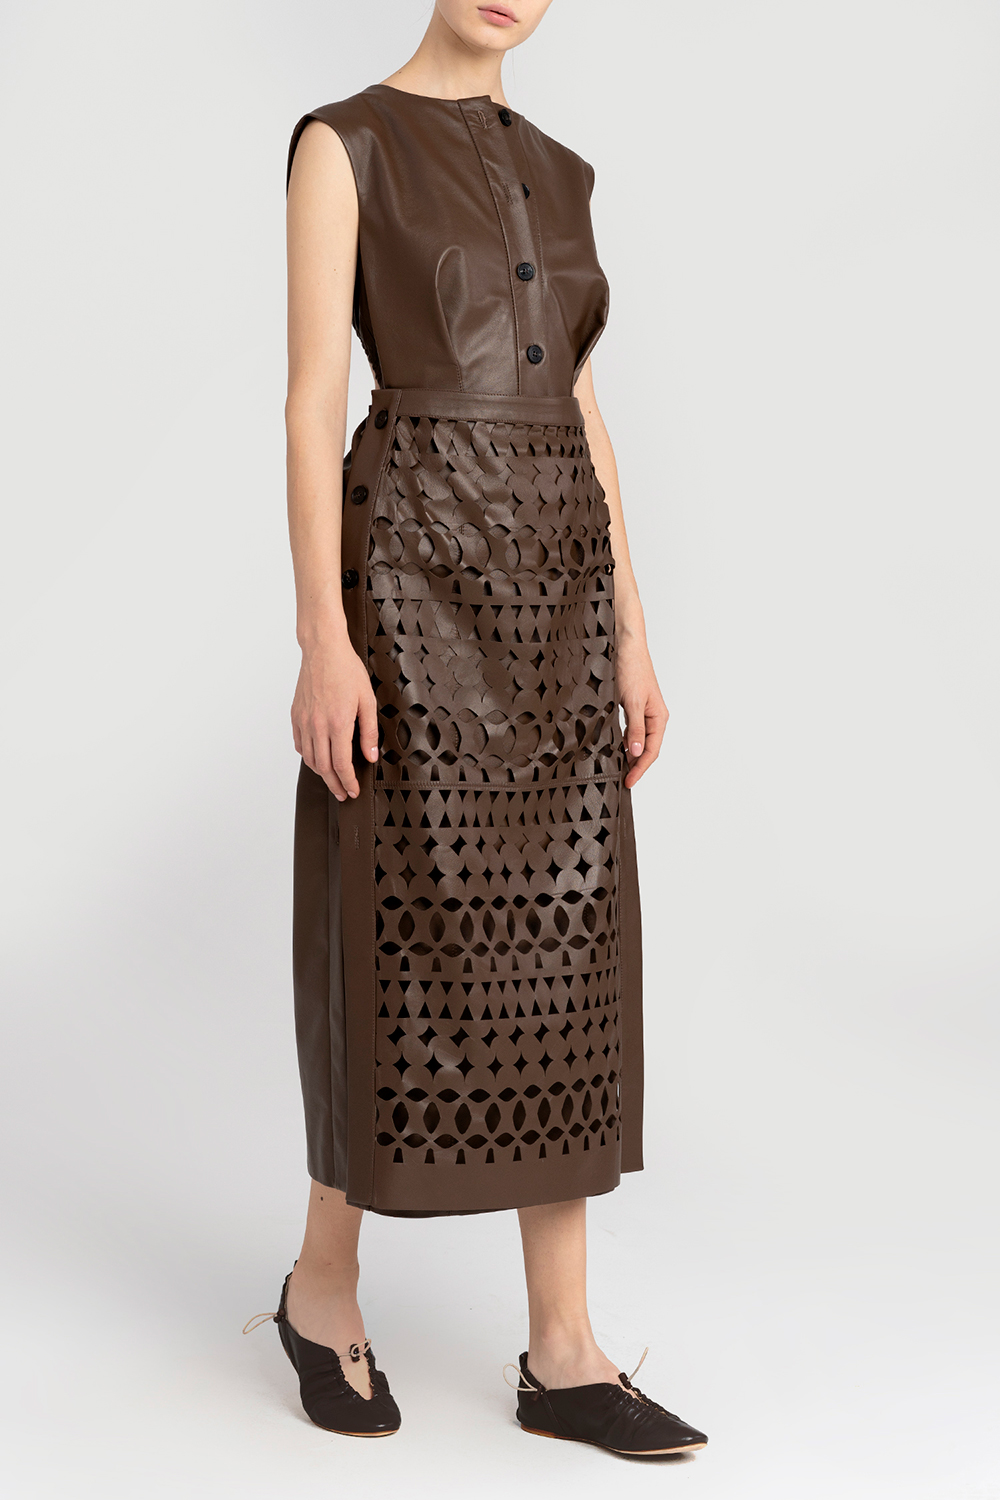 Transformable leather dress